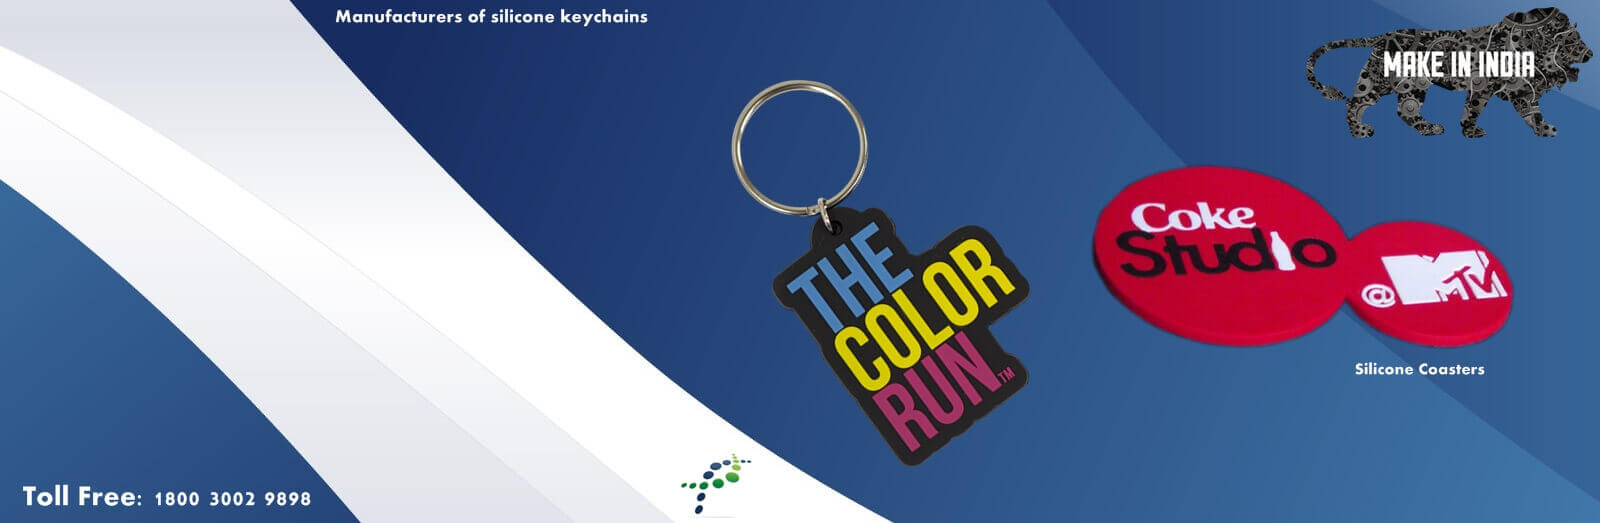 Rubber Keychain Manufacturer in Chennai,Keychain in Chennai,Keychain Manufacturer in Banglore,Promotional Keychain in Chennai,Customized Keychain in Banglore,Keychain Wholesaler in Chennai